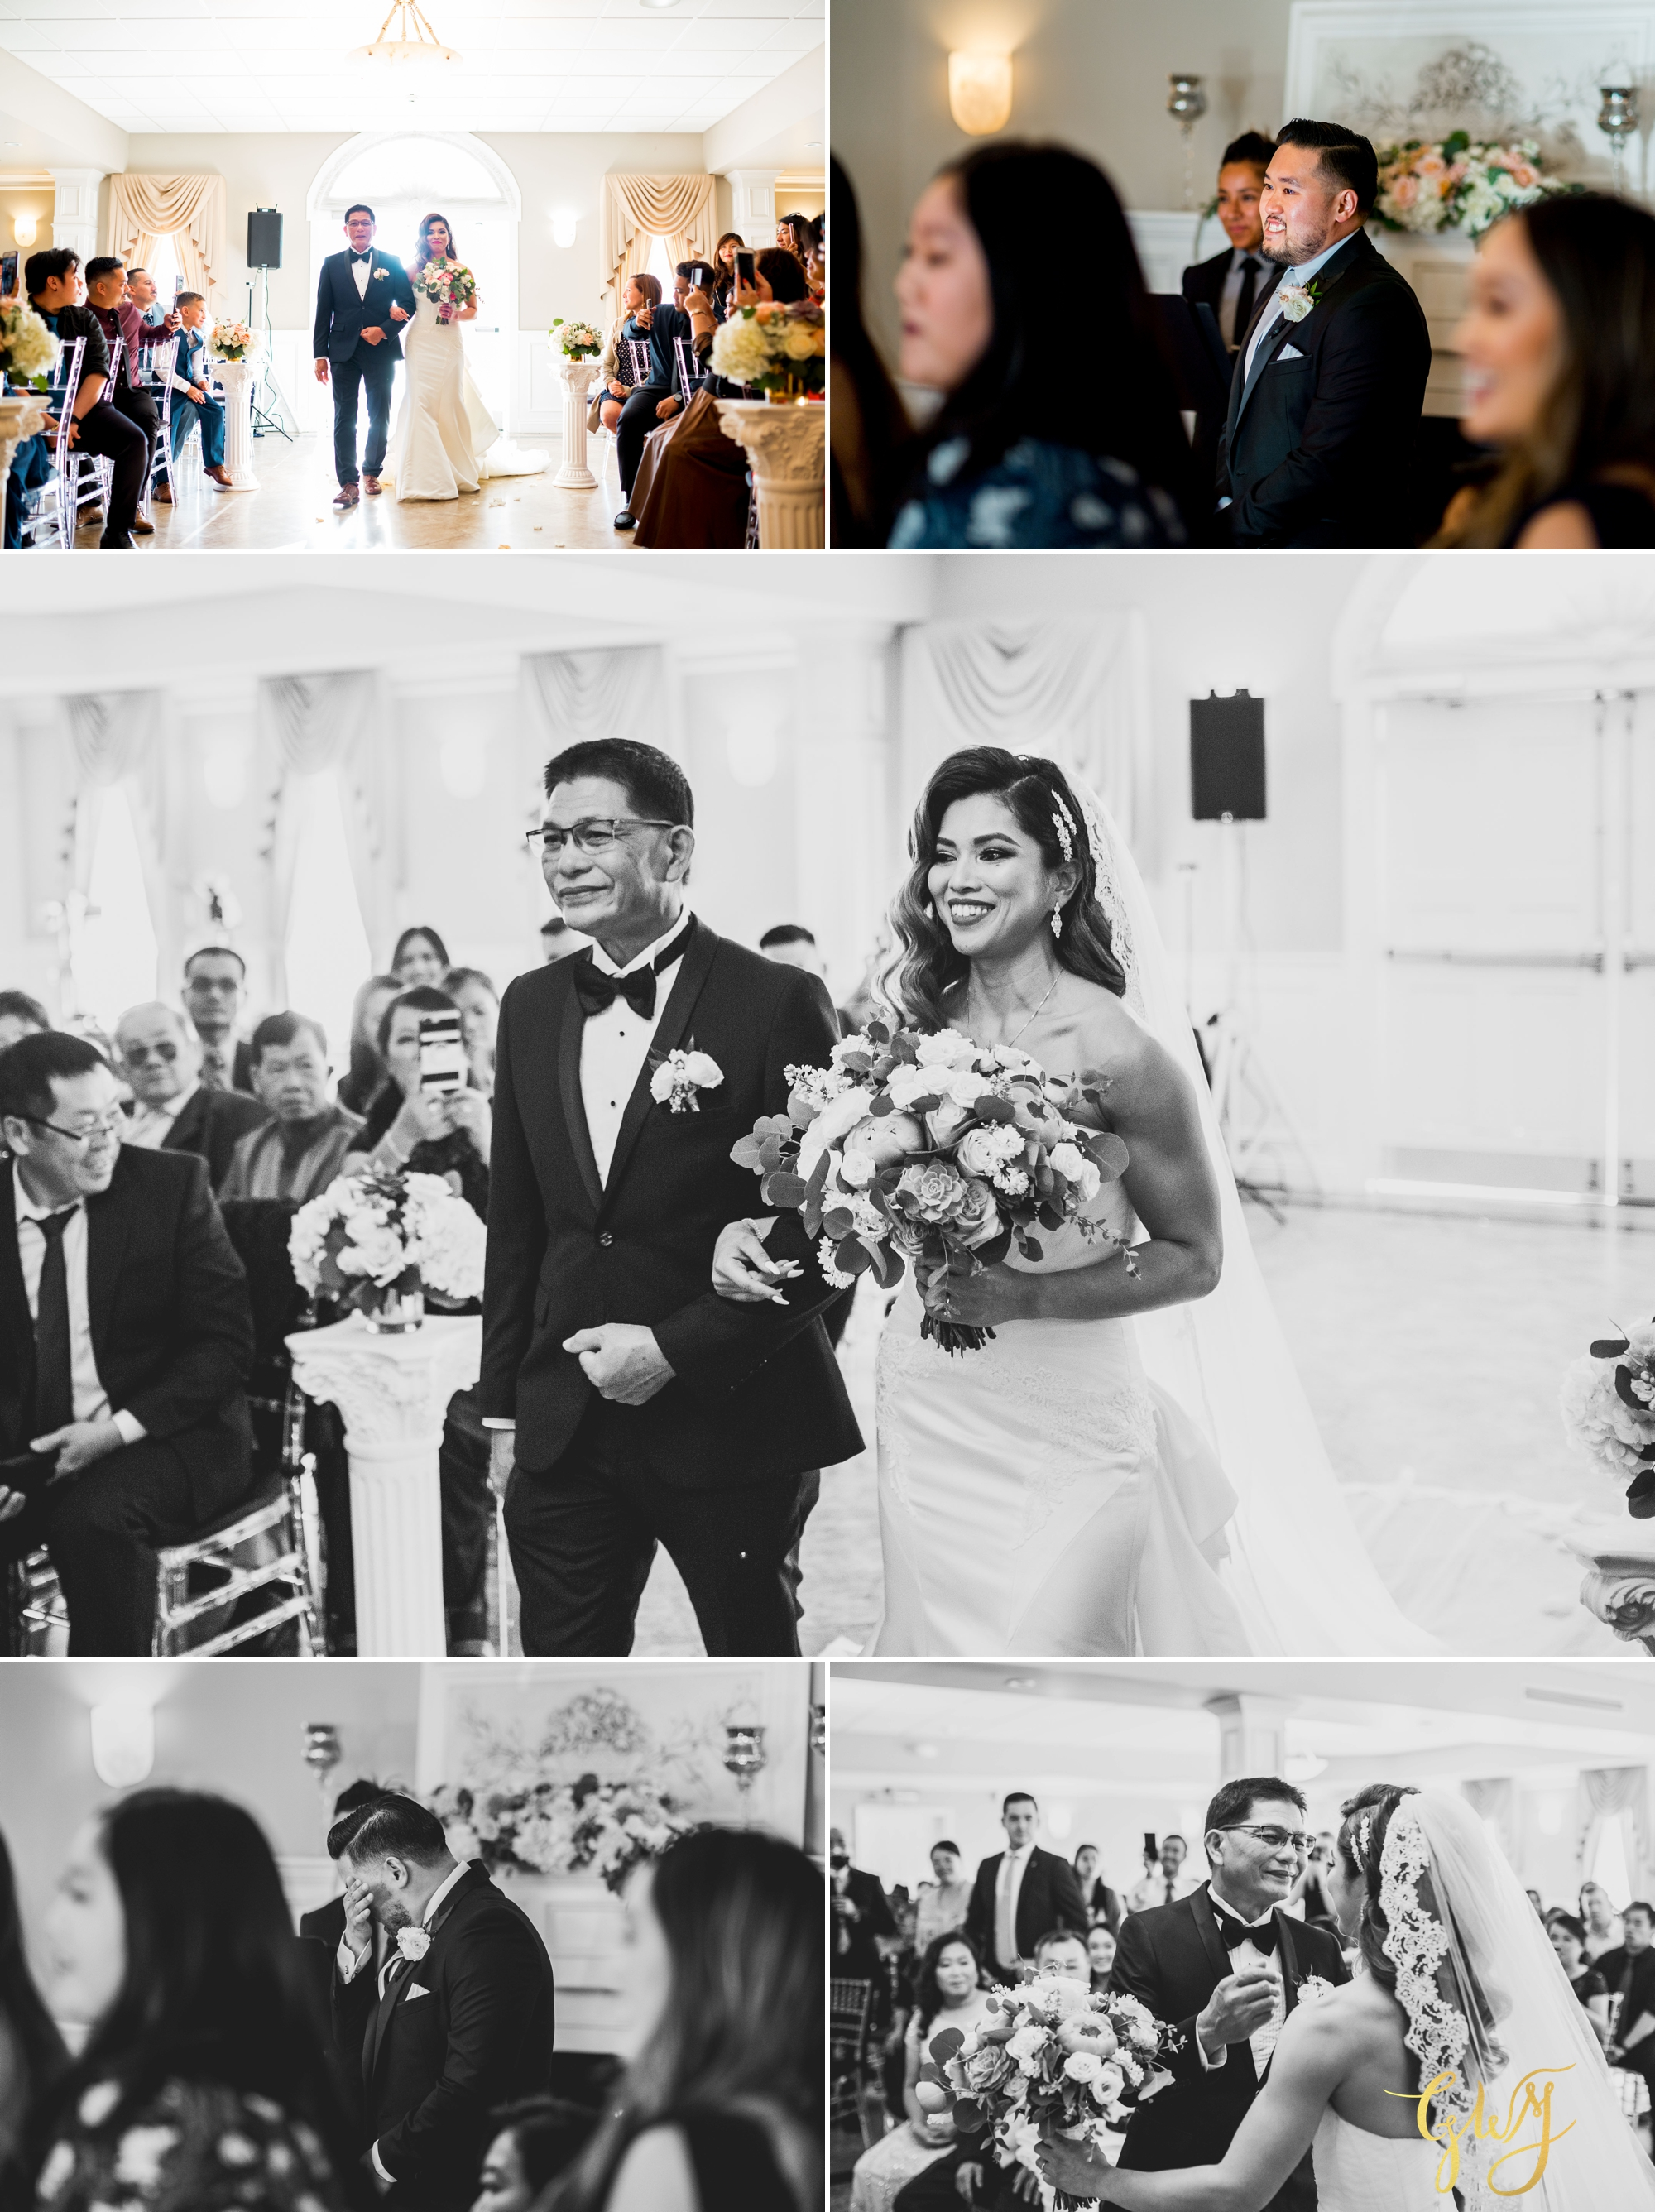 Andy + Caselyn's White House Event Center Orange County Spring Wedding by Glass Woods Media 27.jpg